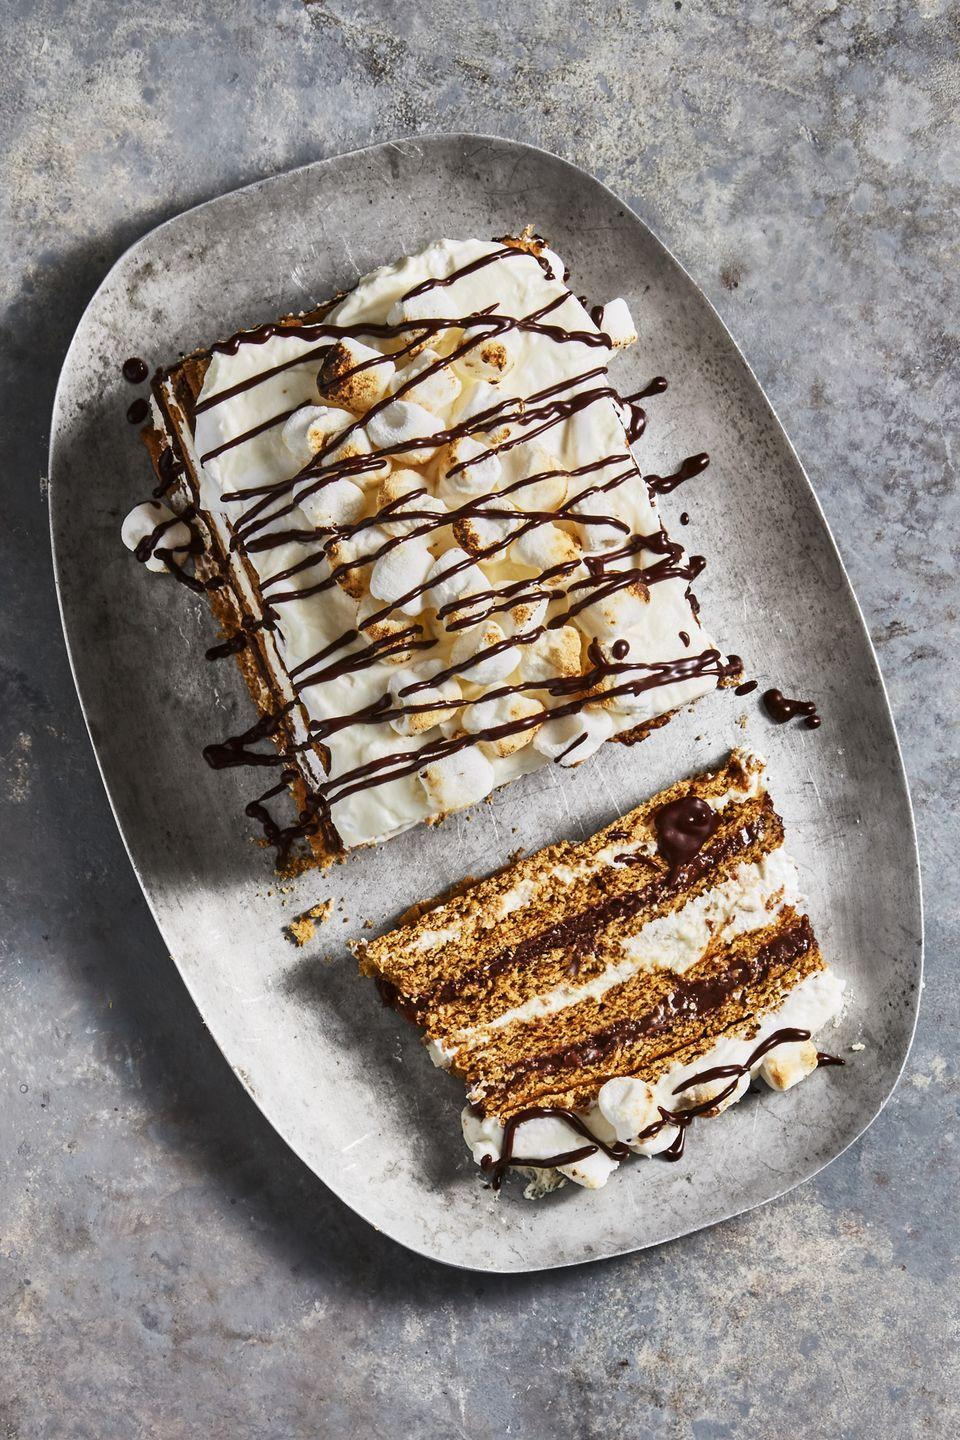 """<p>To Mom's delight, there's no post-campfire cleanup necessary.This cake is entirely no-bake. </p><p><em><a href=""""https://www.goodhousekeeping.com/food-recipes/dessert/a45720/smores-icebox-cake-recipe/"""" rel=""""nofollow noopener"""" target=""""_blank"""" data-ylk=""""slk:Get the recipe for S'mores Icebox Cake »"""" class=""""link rapid-noclick-resp"""">Get the recipe for S'mores Icebox Cake »</a></em></p>"""